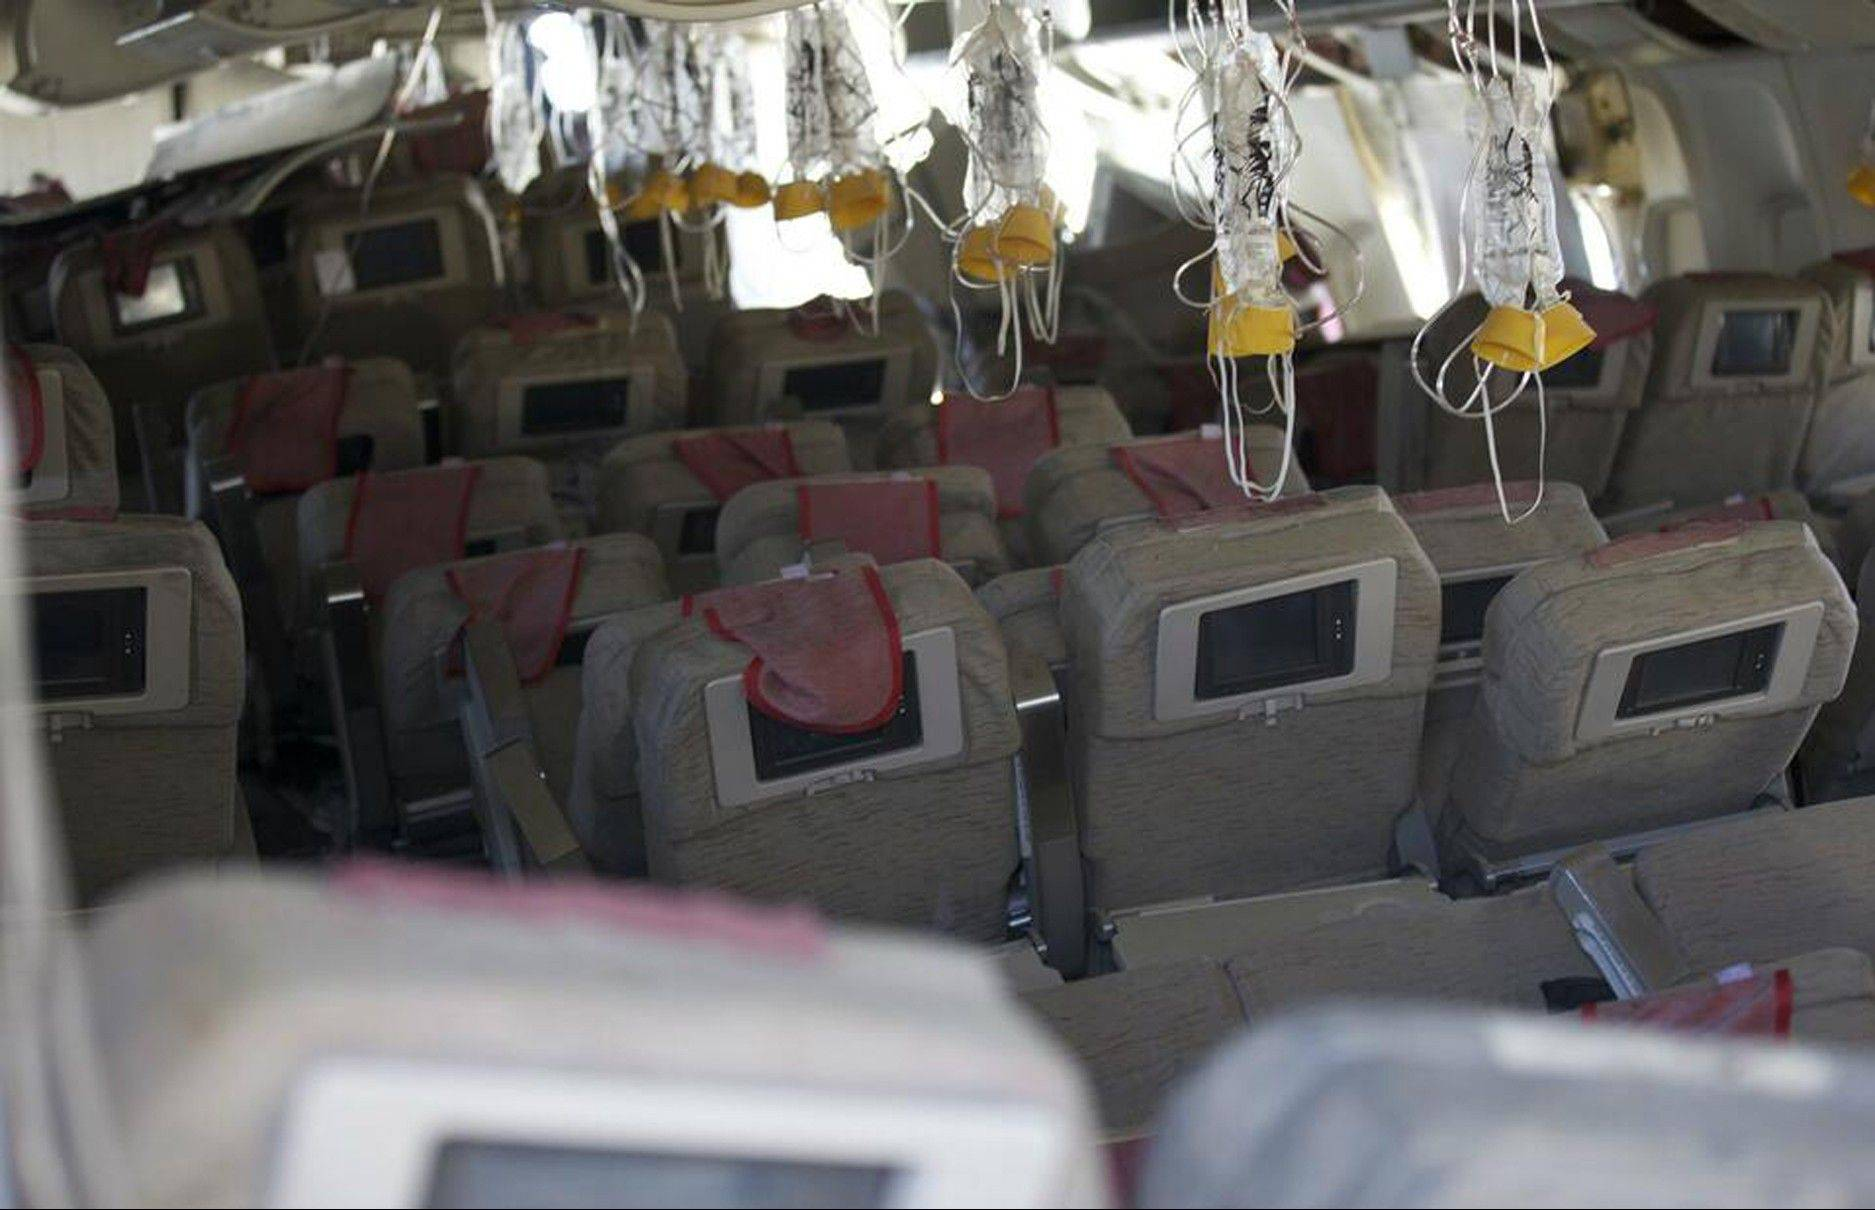 The interior of the Boeing 777 Asiana Airlines Flight 214 aircraft that crashed upon landing in San Francisco last week. Two of the 307 passengers aboard were killed.